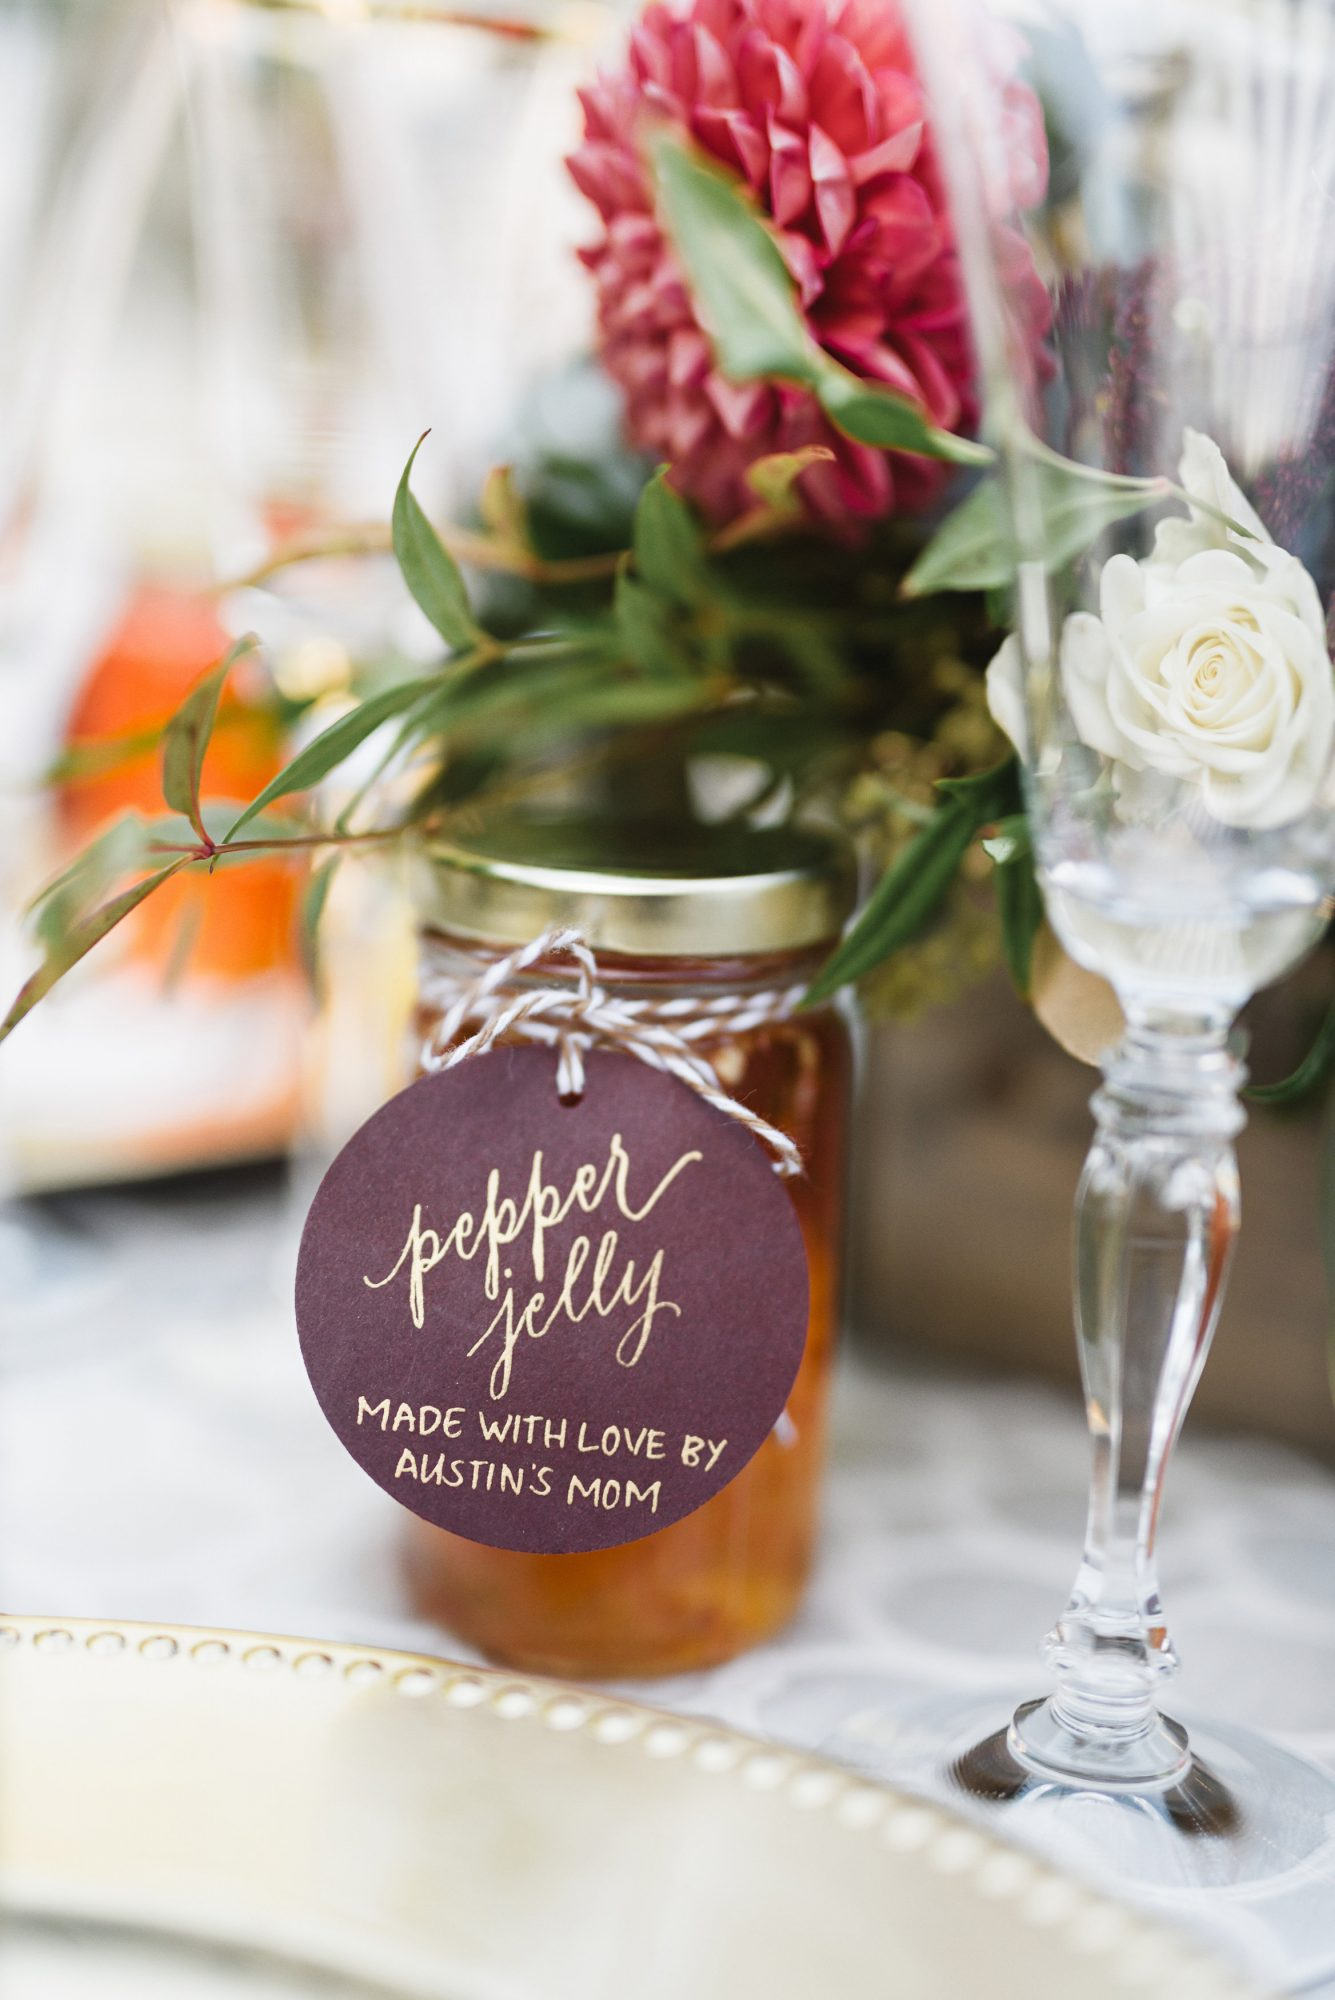 A great DIY option is delicious pepper jelly, which is best made with love from mom herself. She'll appreciate getting a shout out for her hard work on your special day.